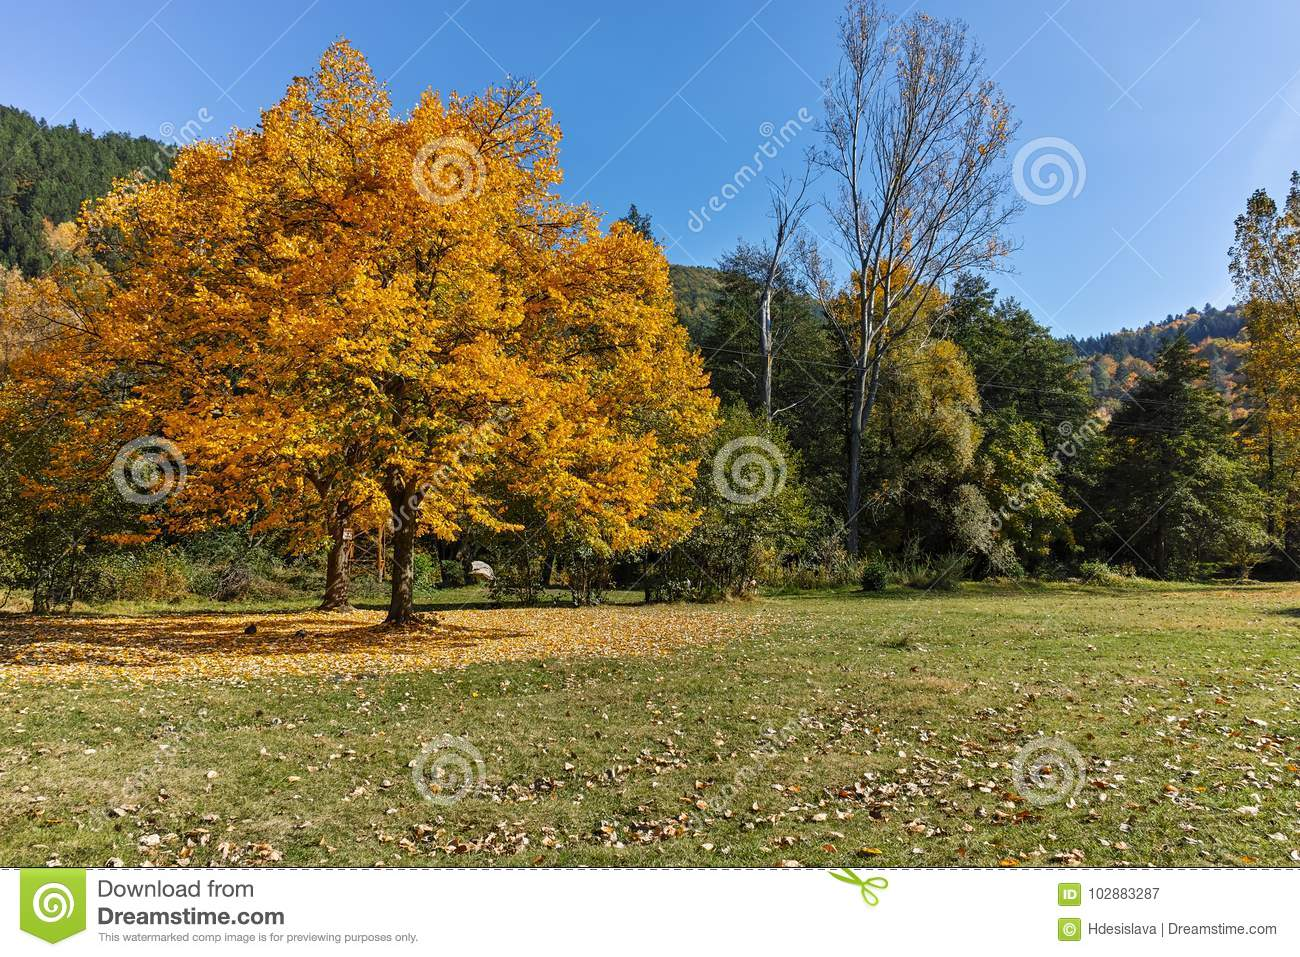 Autumn Landscape with yellow tree near Pancharevo lake, Sofia city Region